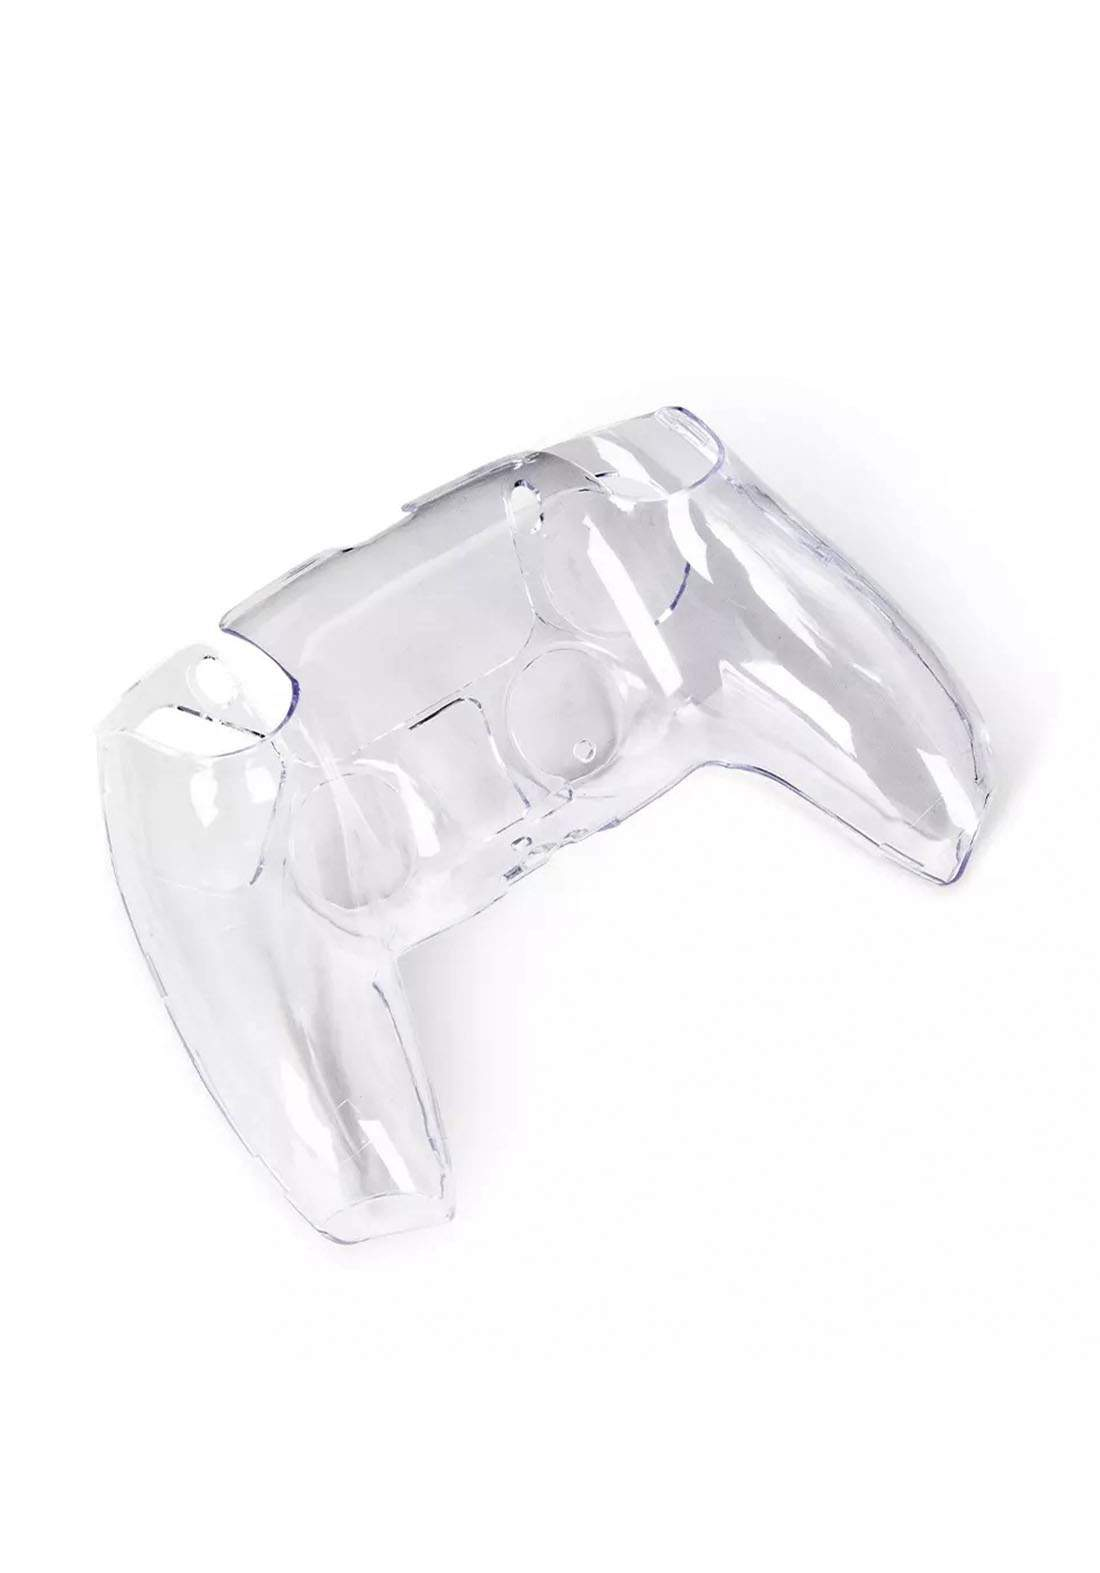 OIVO IV-P5230 Crystal Hard Case for PS5 Controllers حافظة وحدة التحكم